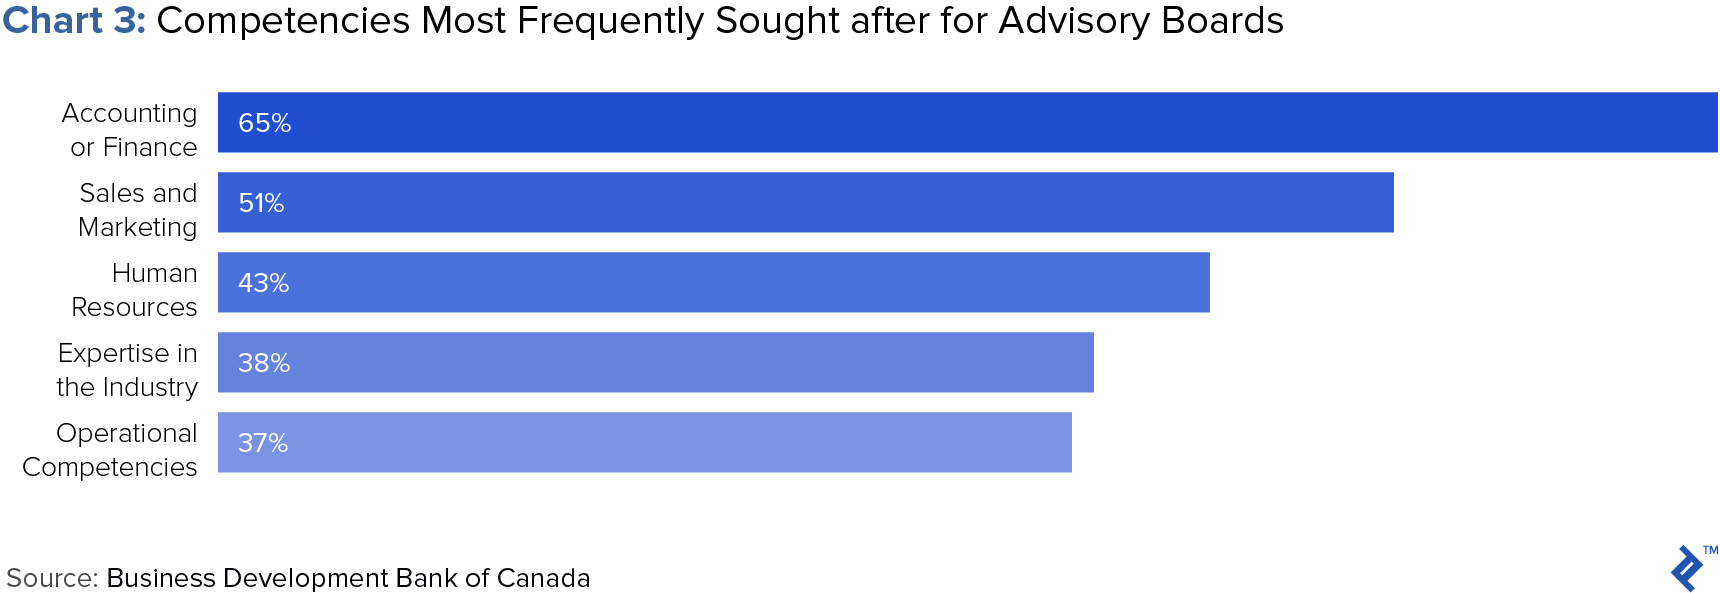 chart of competencies most frequently sought for advisory boards